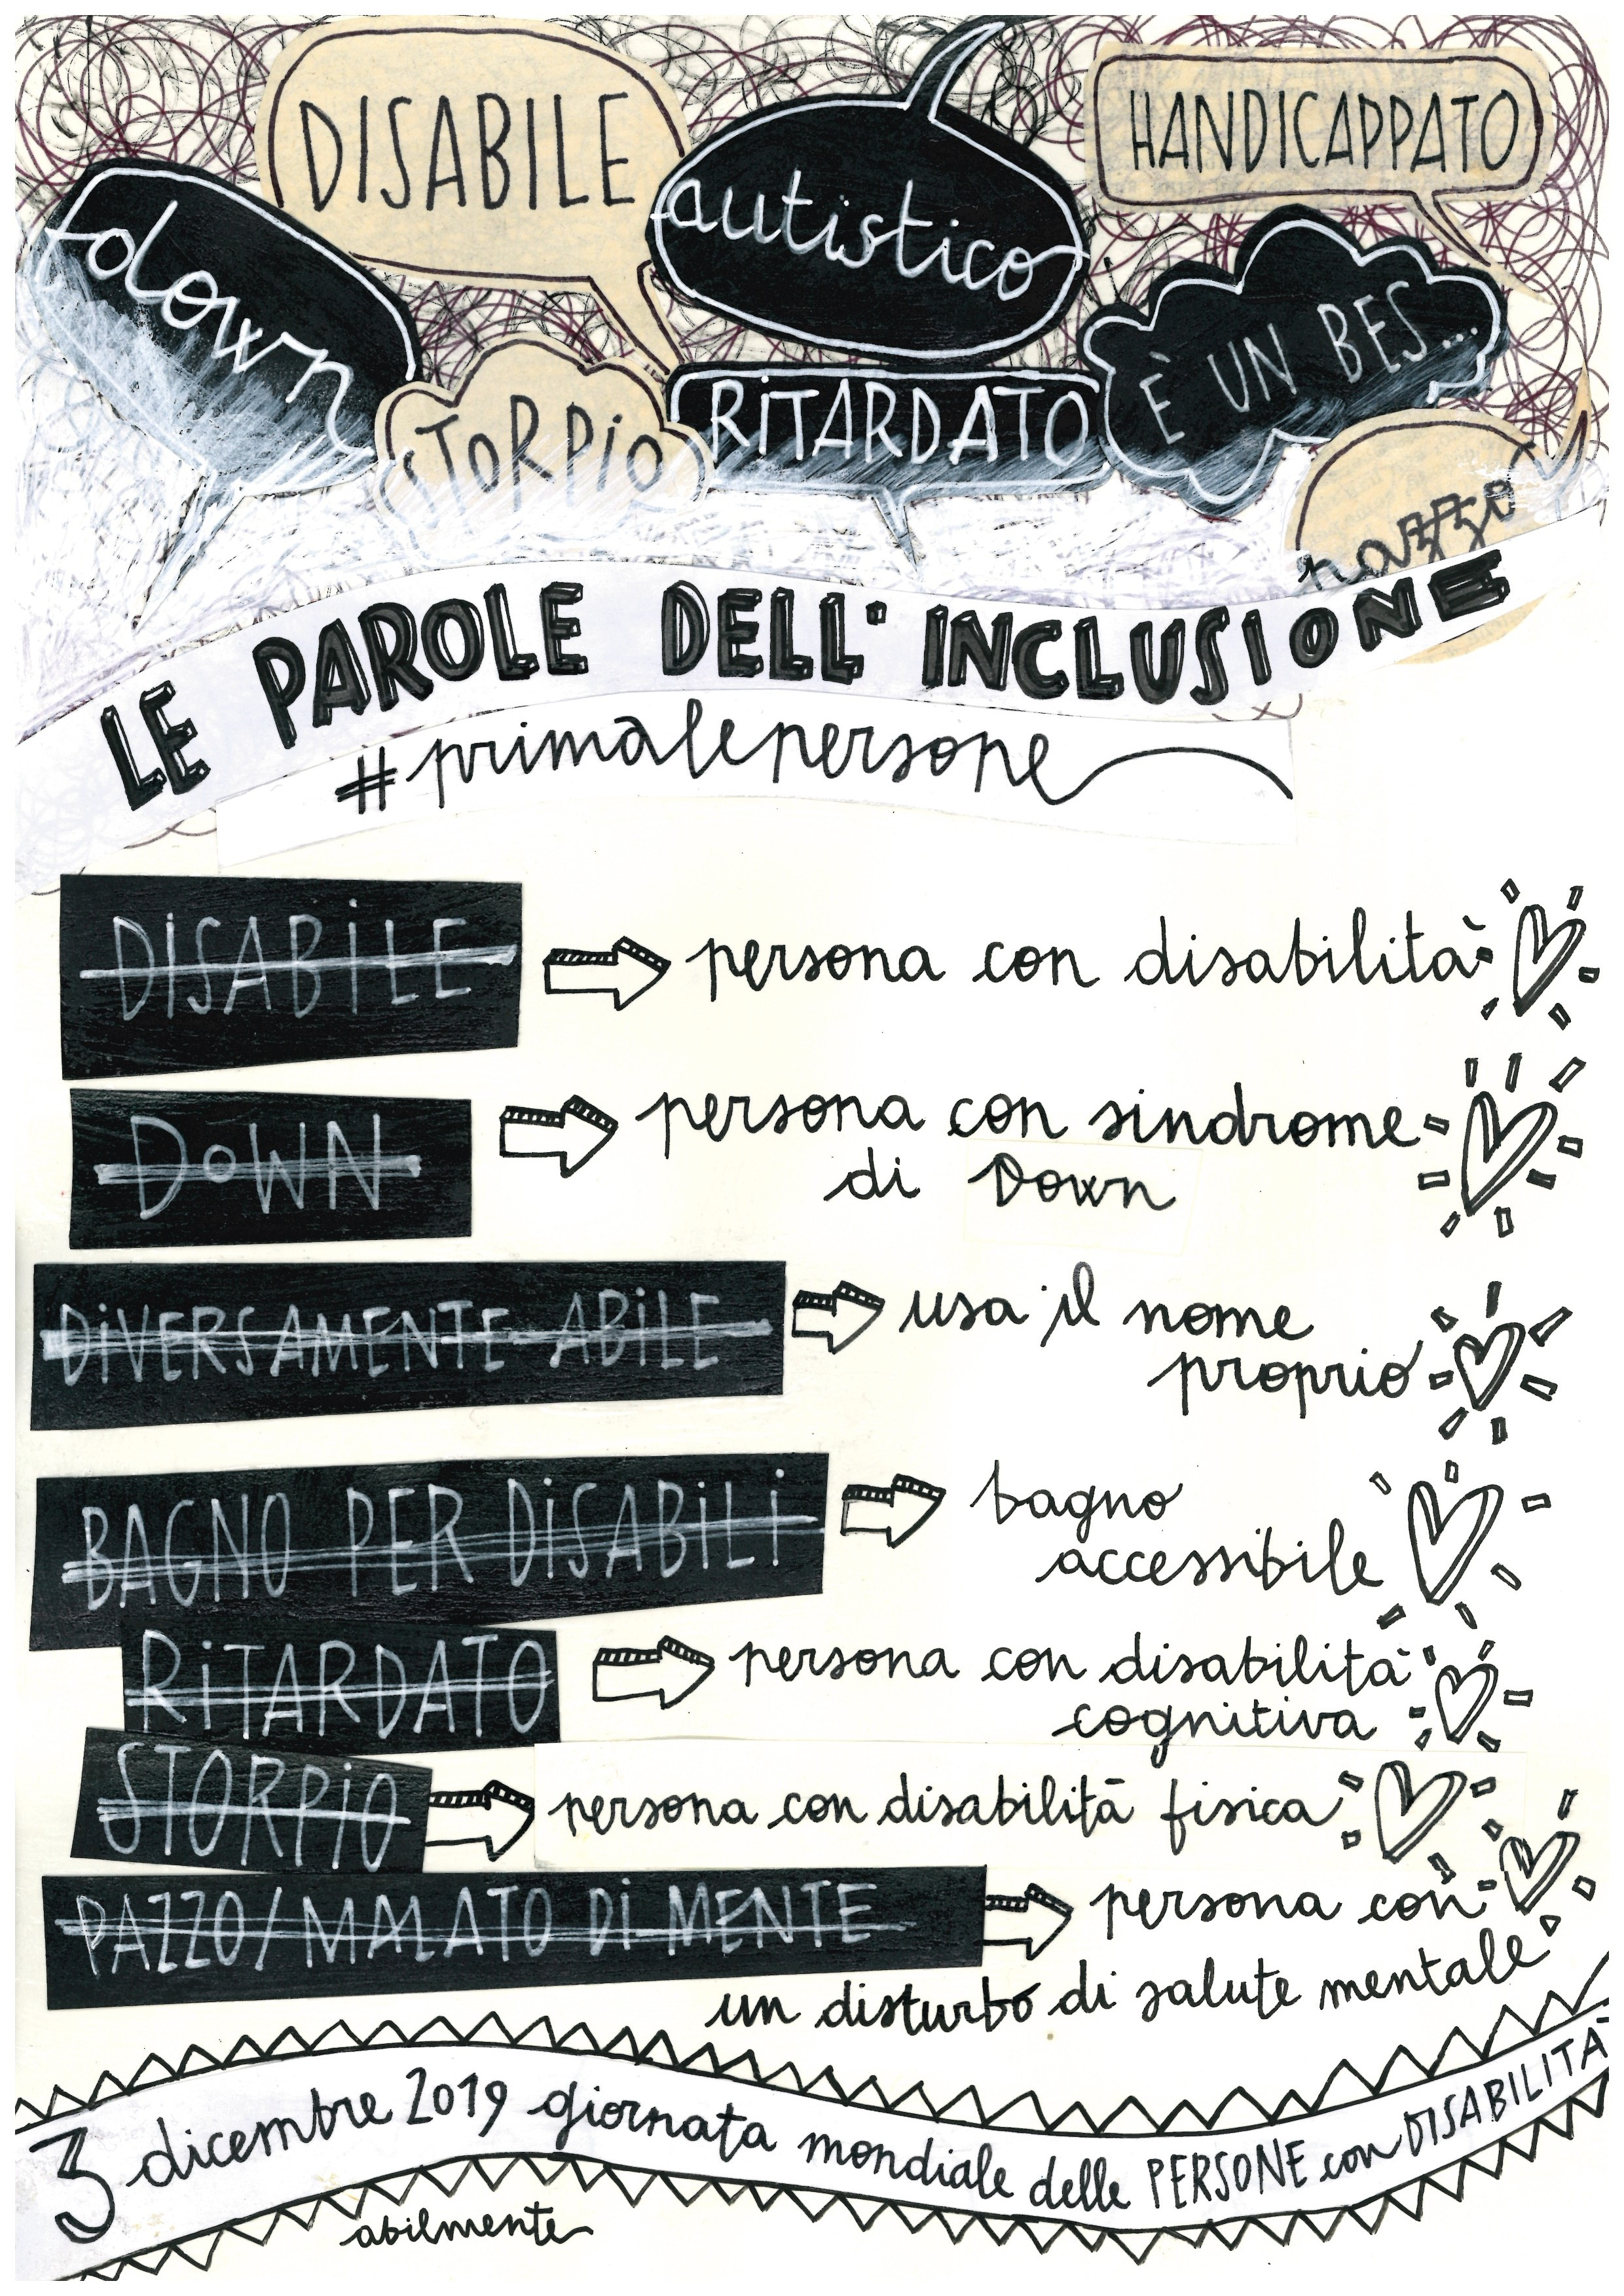 Le parole dell'inclusione